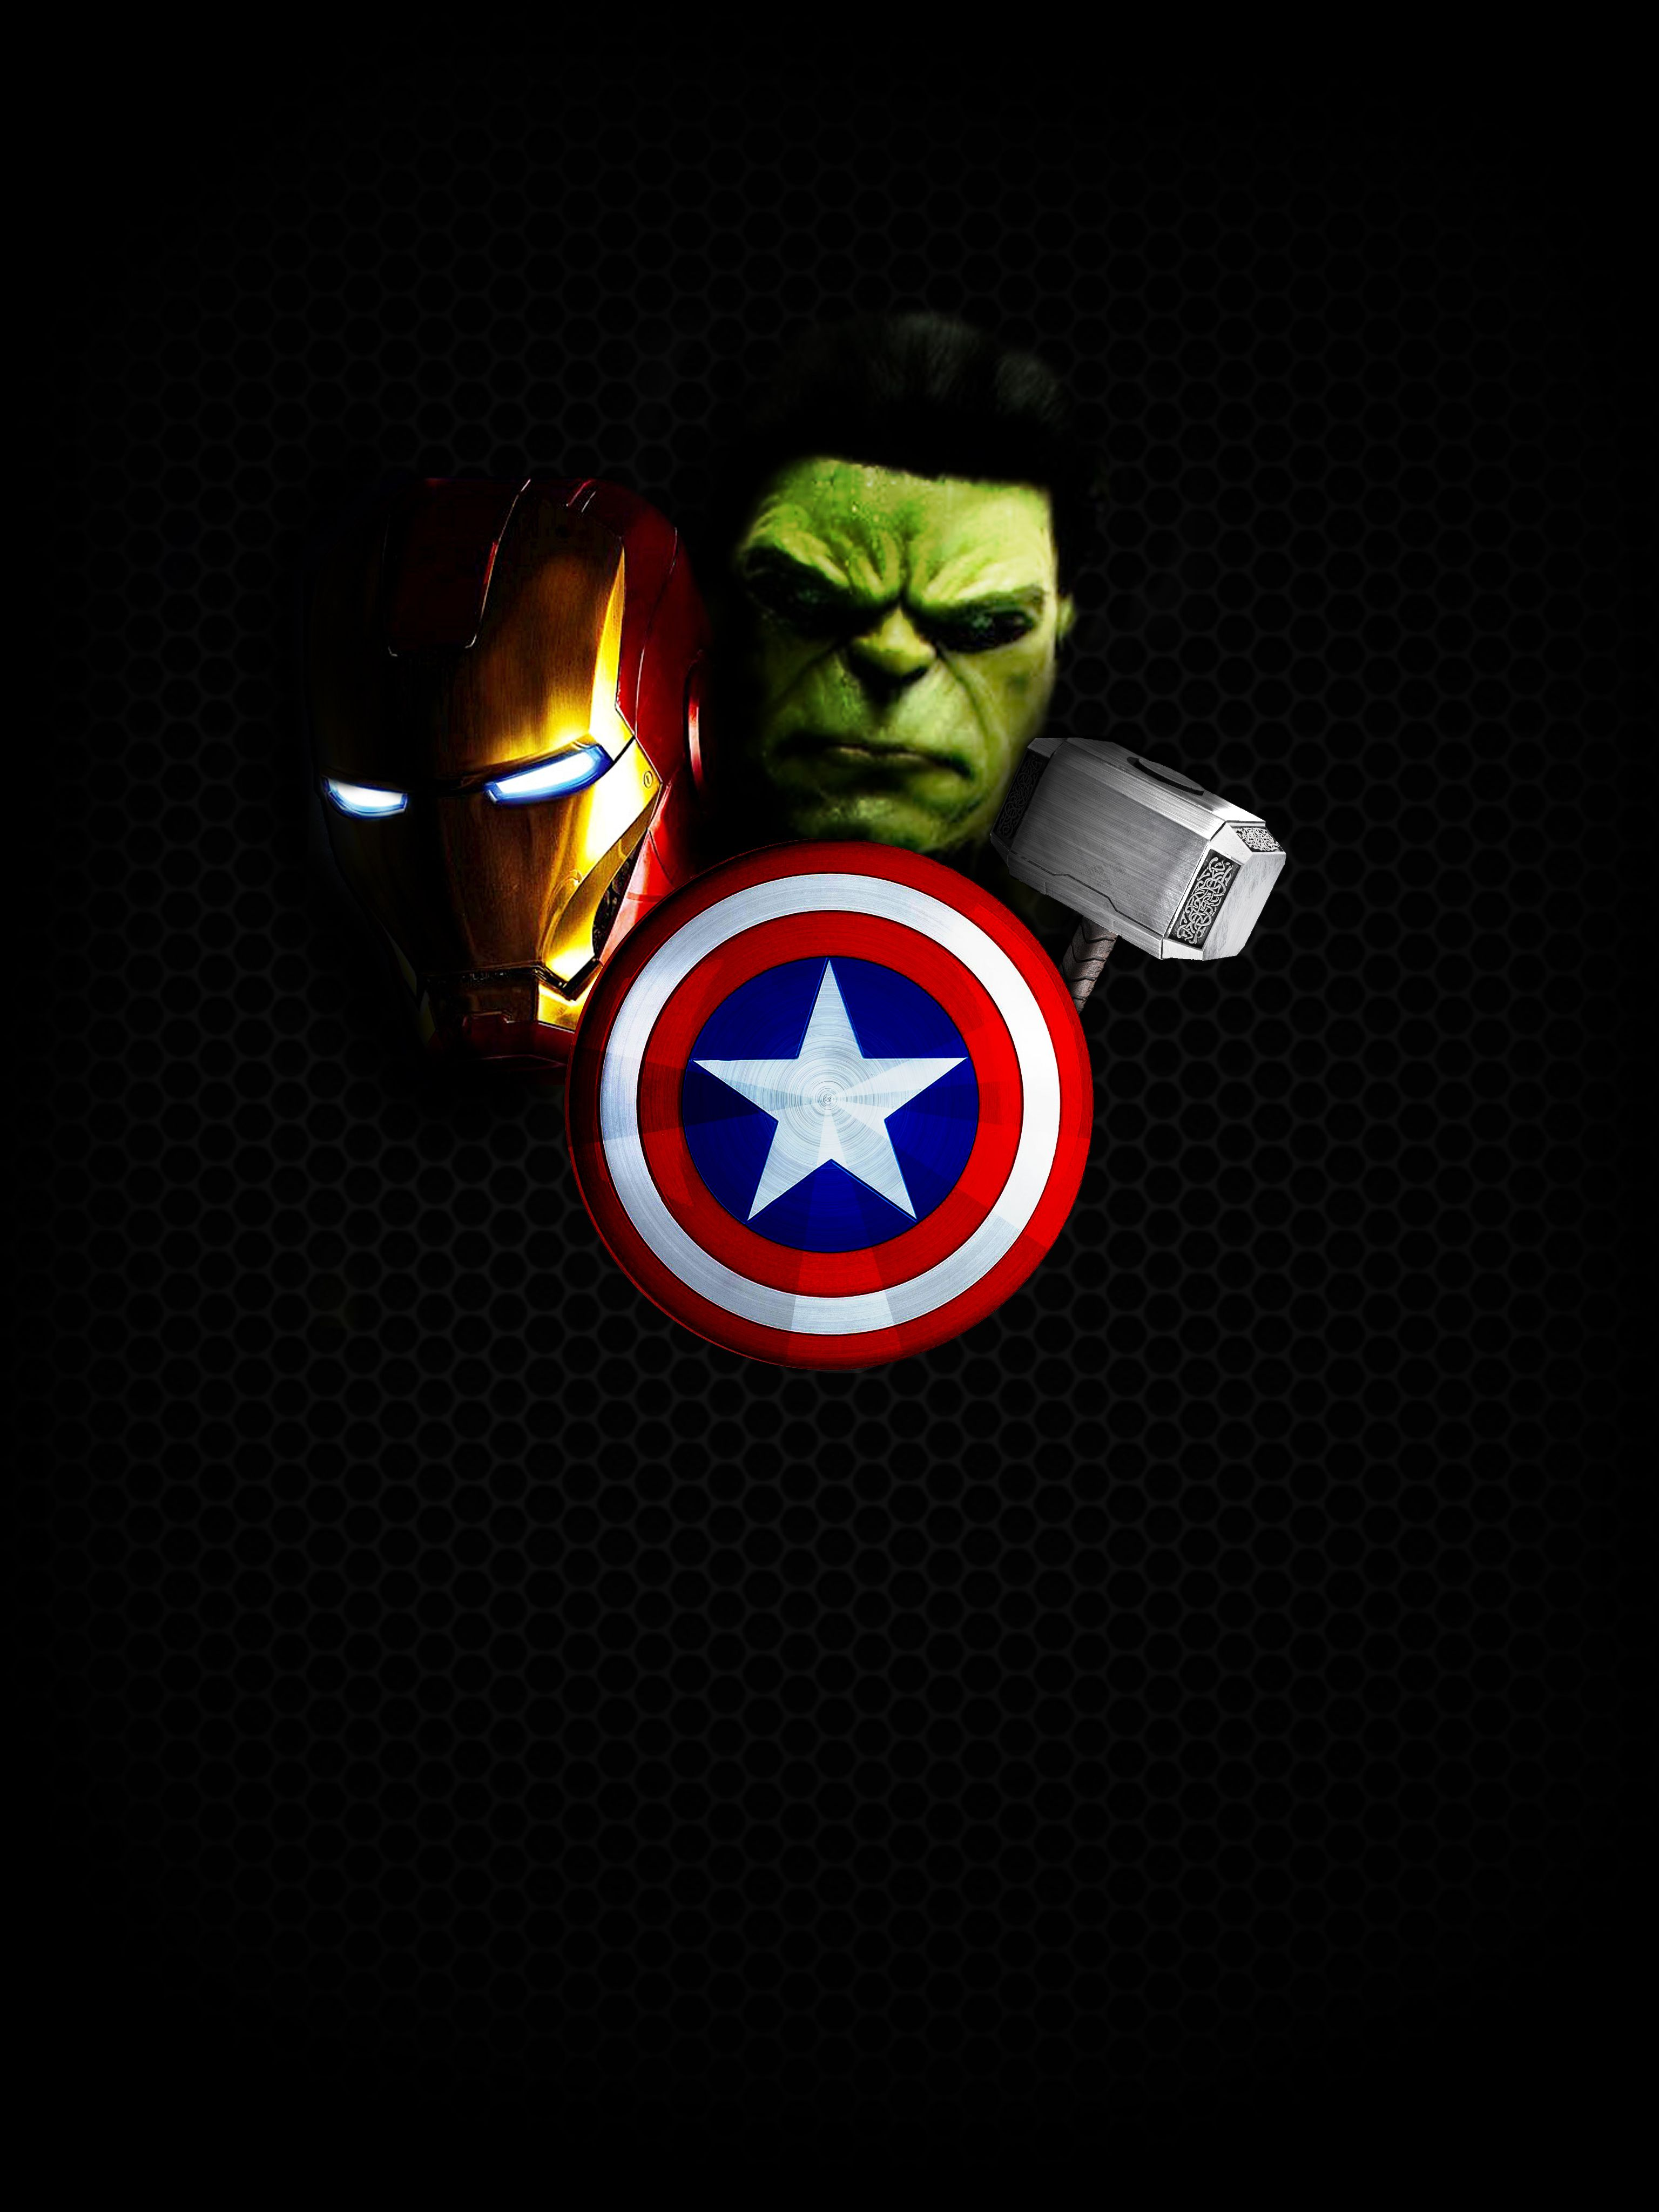 Avengers Android Wallpapers   Top Avengers Android 3072x4096